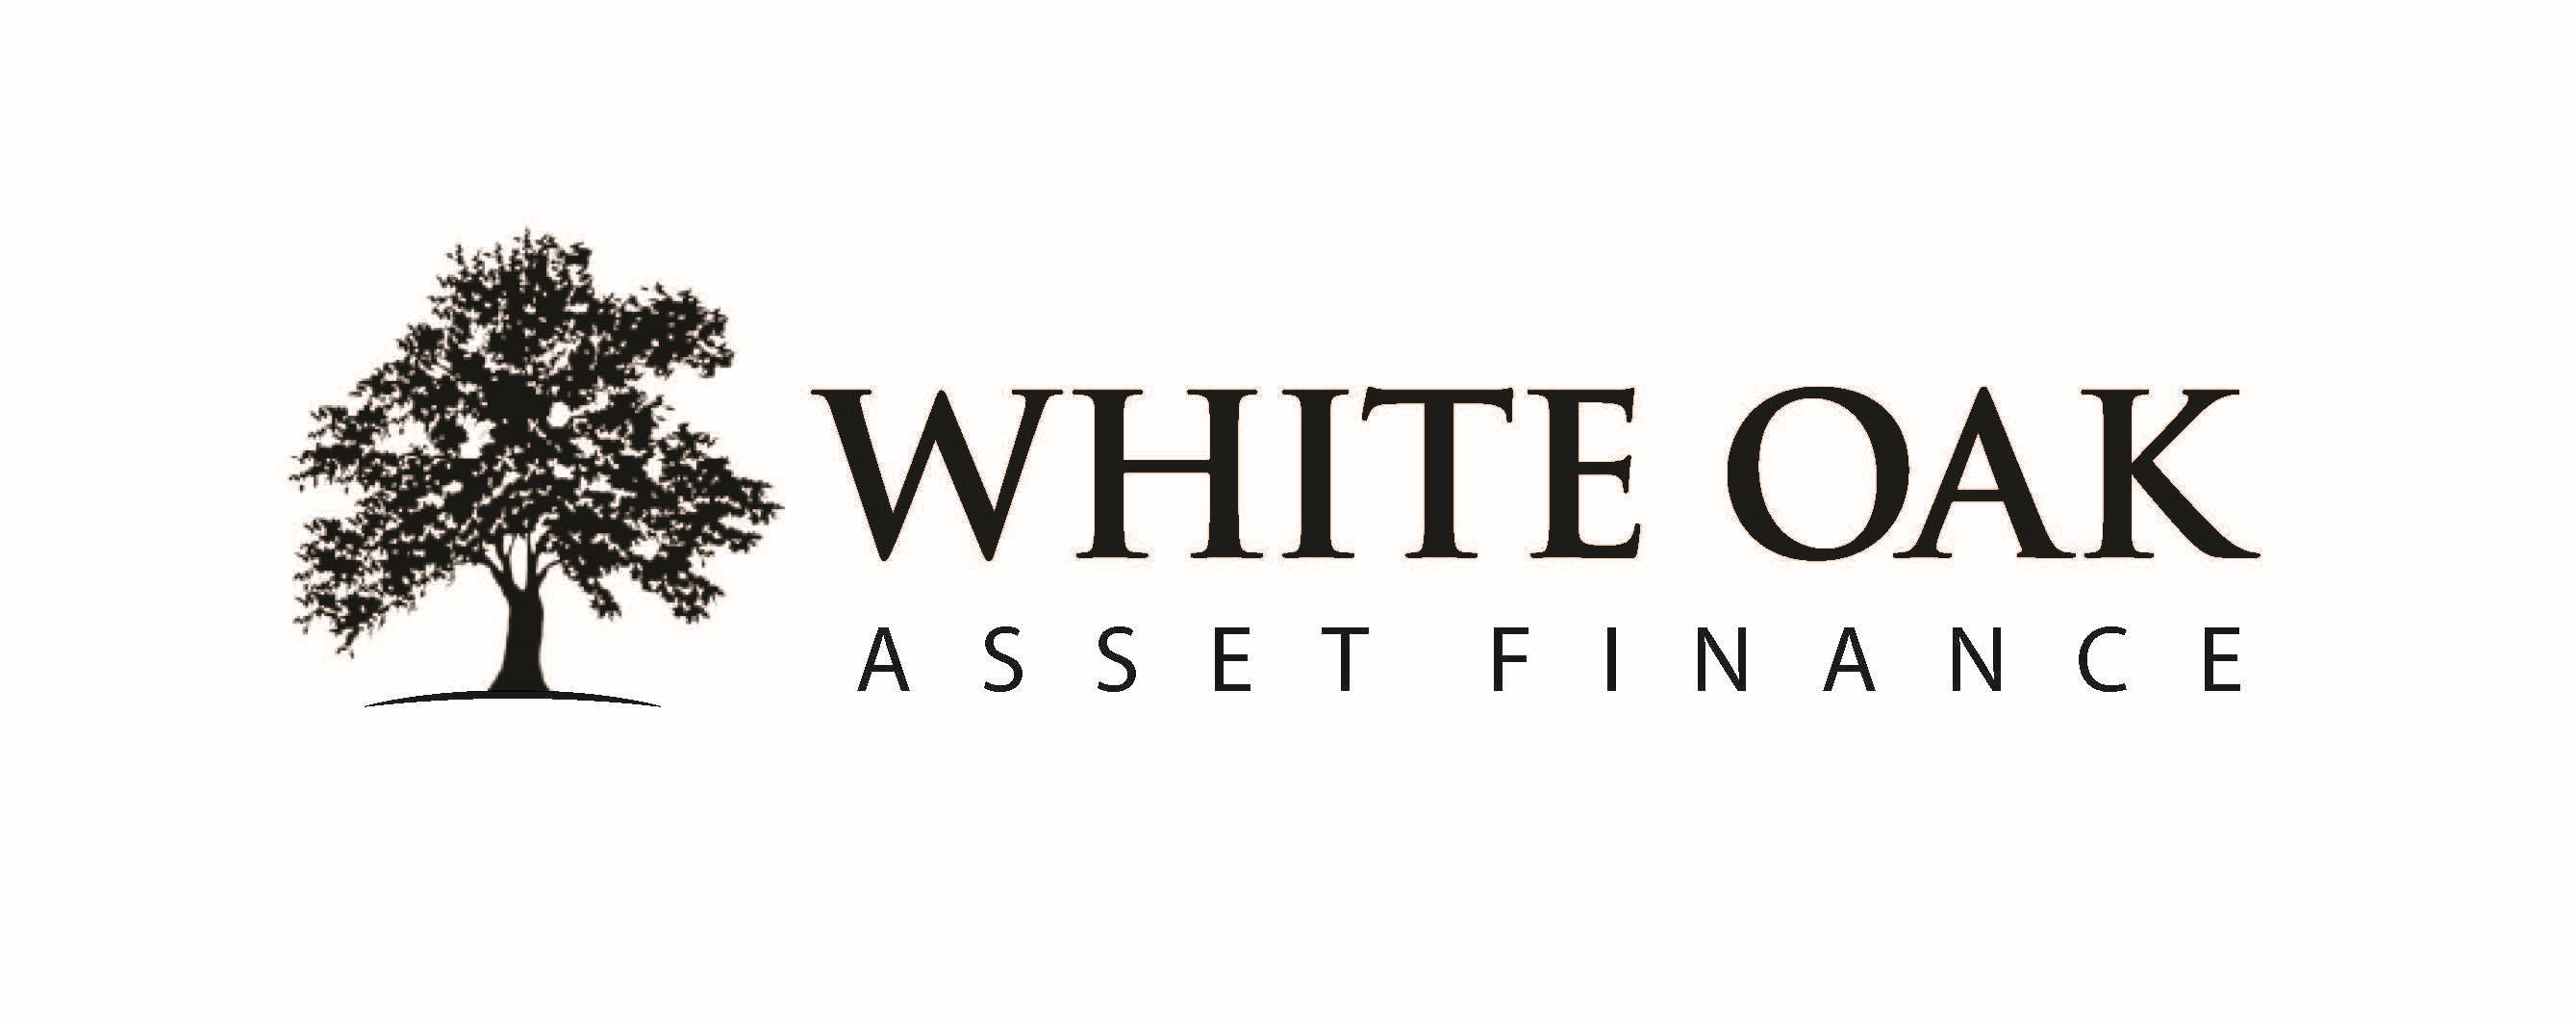 White Oak Asset Finance.jpg